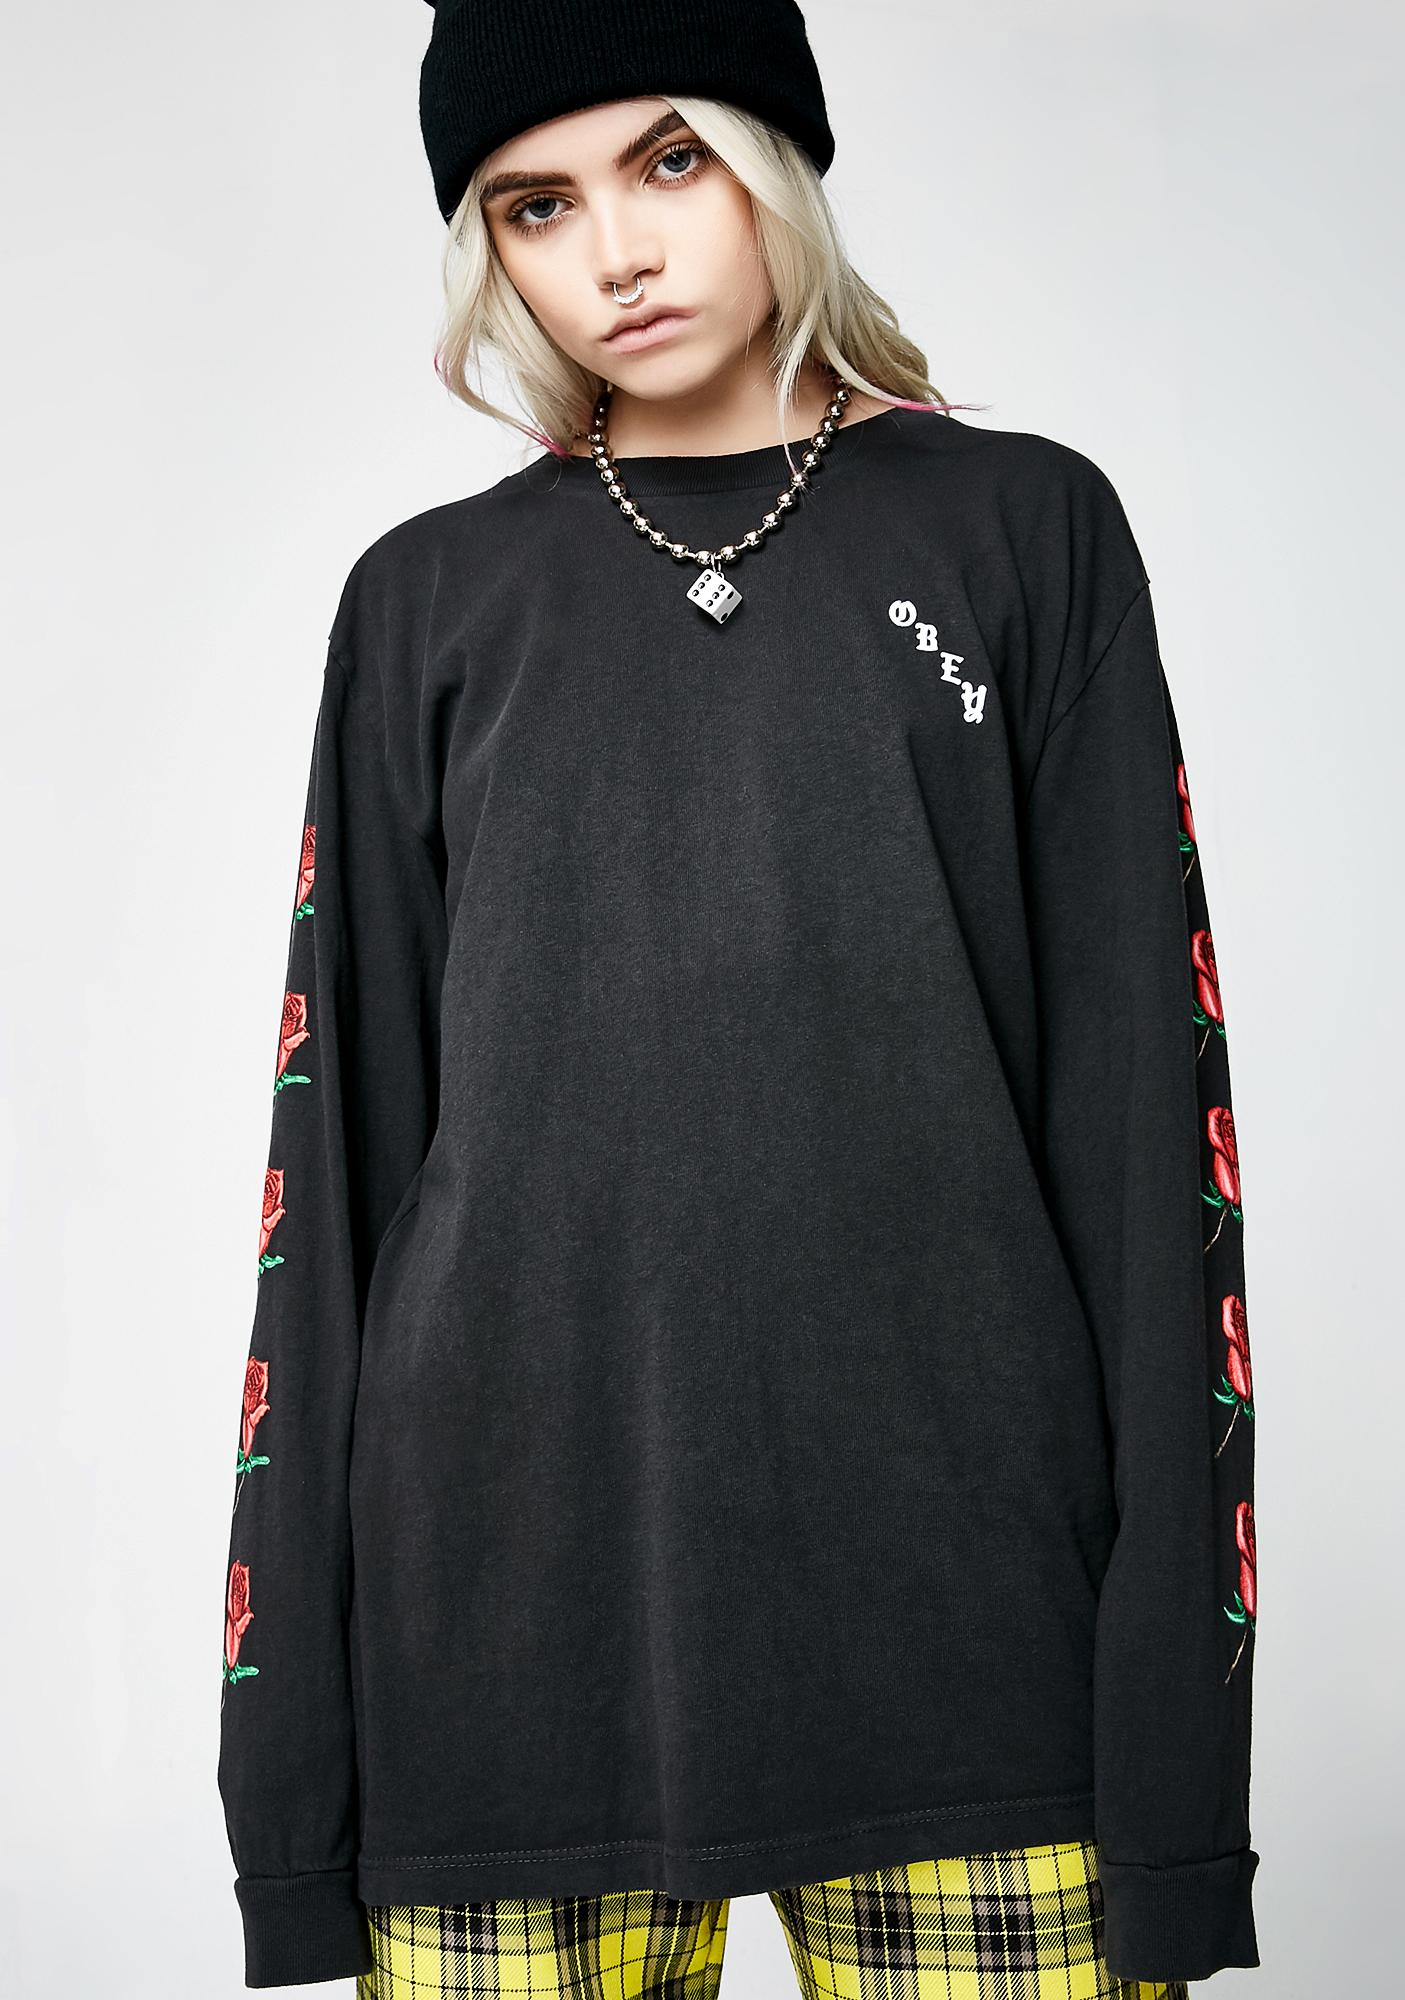 Obey Slauson Rose Long Sleeve Tee